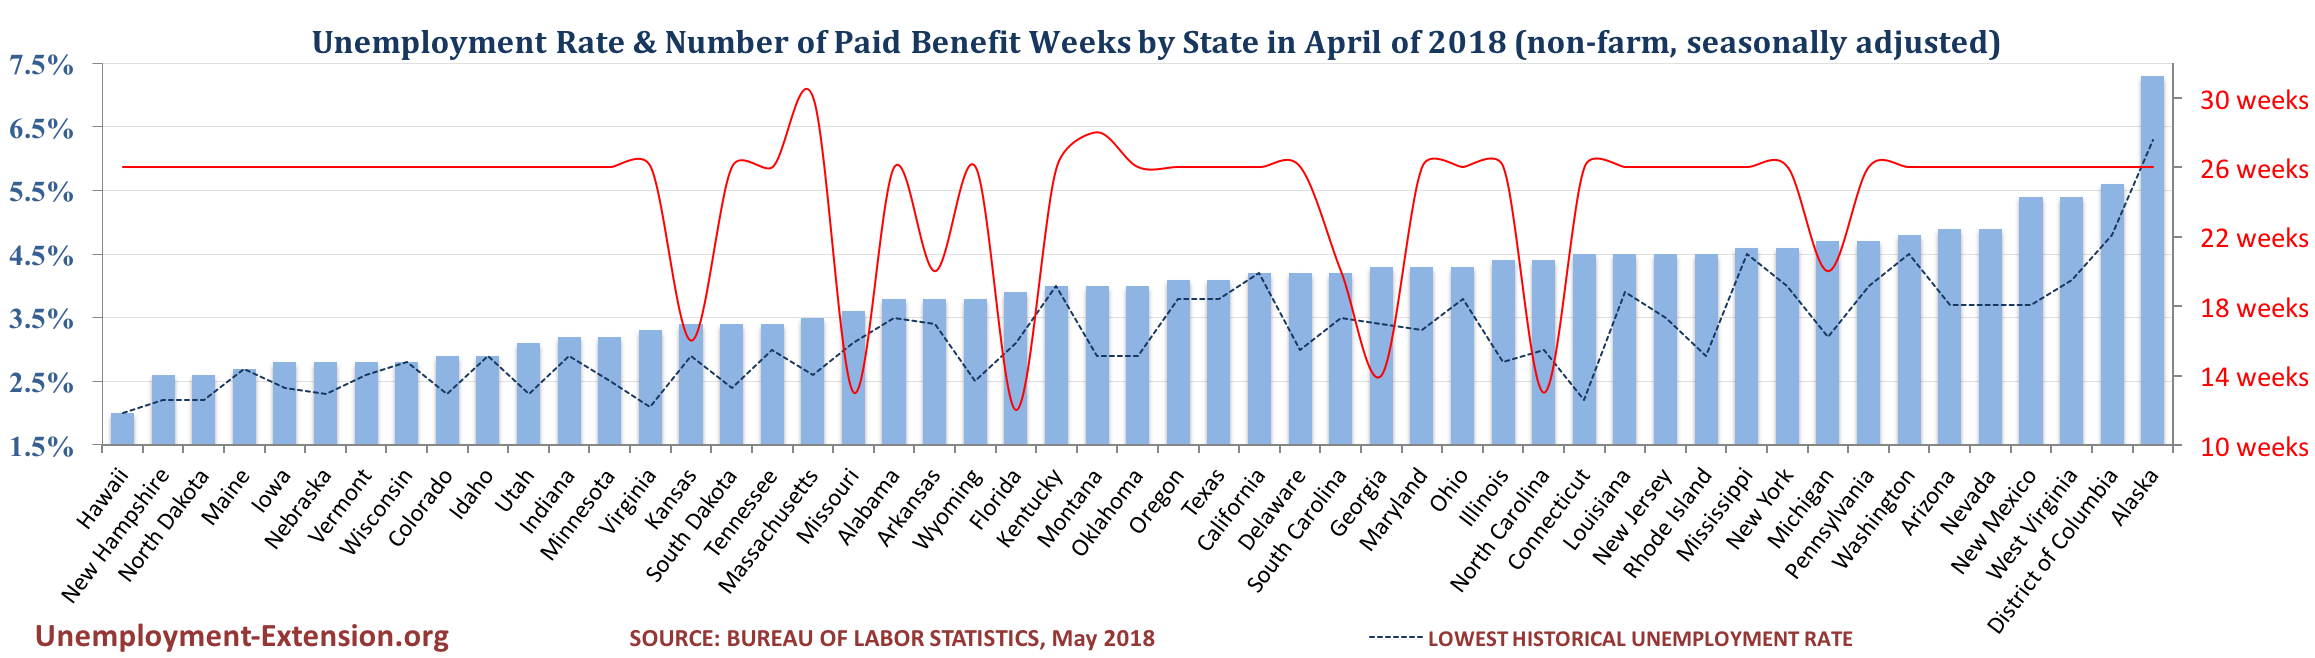 Unemployment Rate and Number of Paid Unemployment Benefit weeks by State (non-farm, seasonally adjusted) in March of 2018